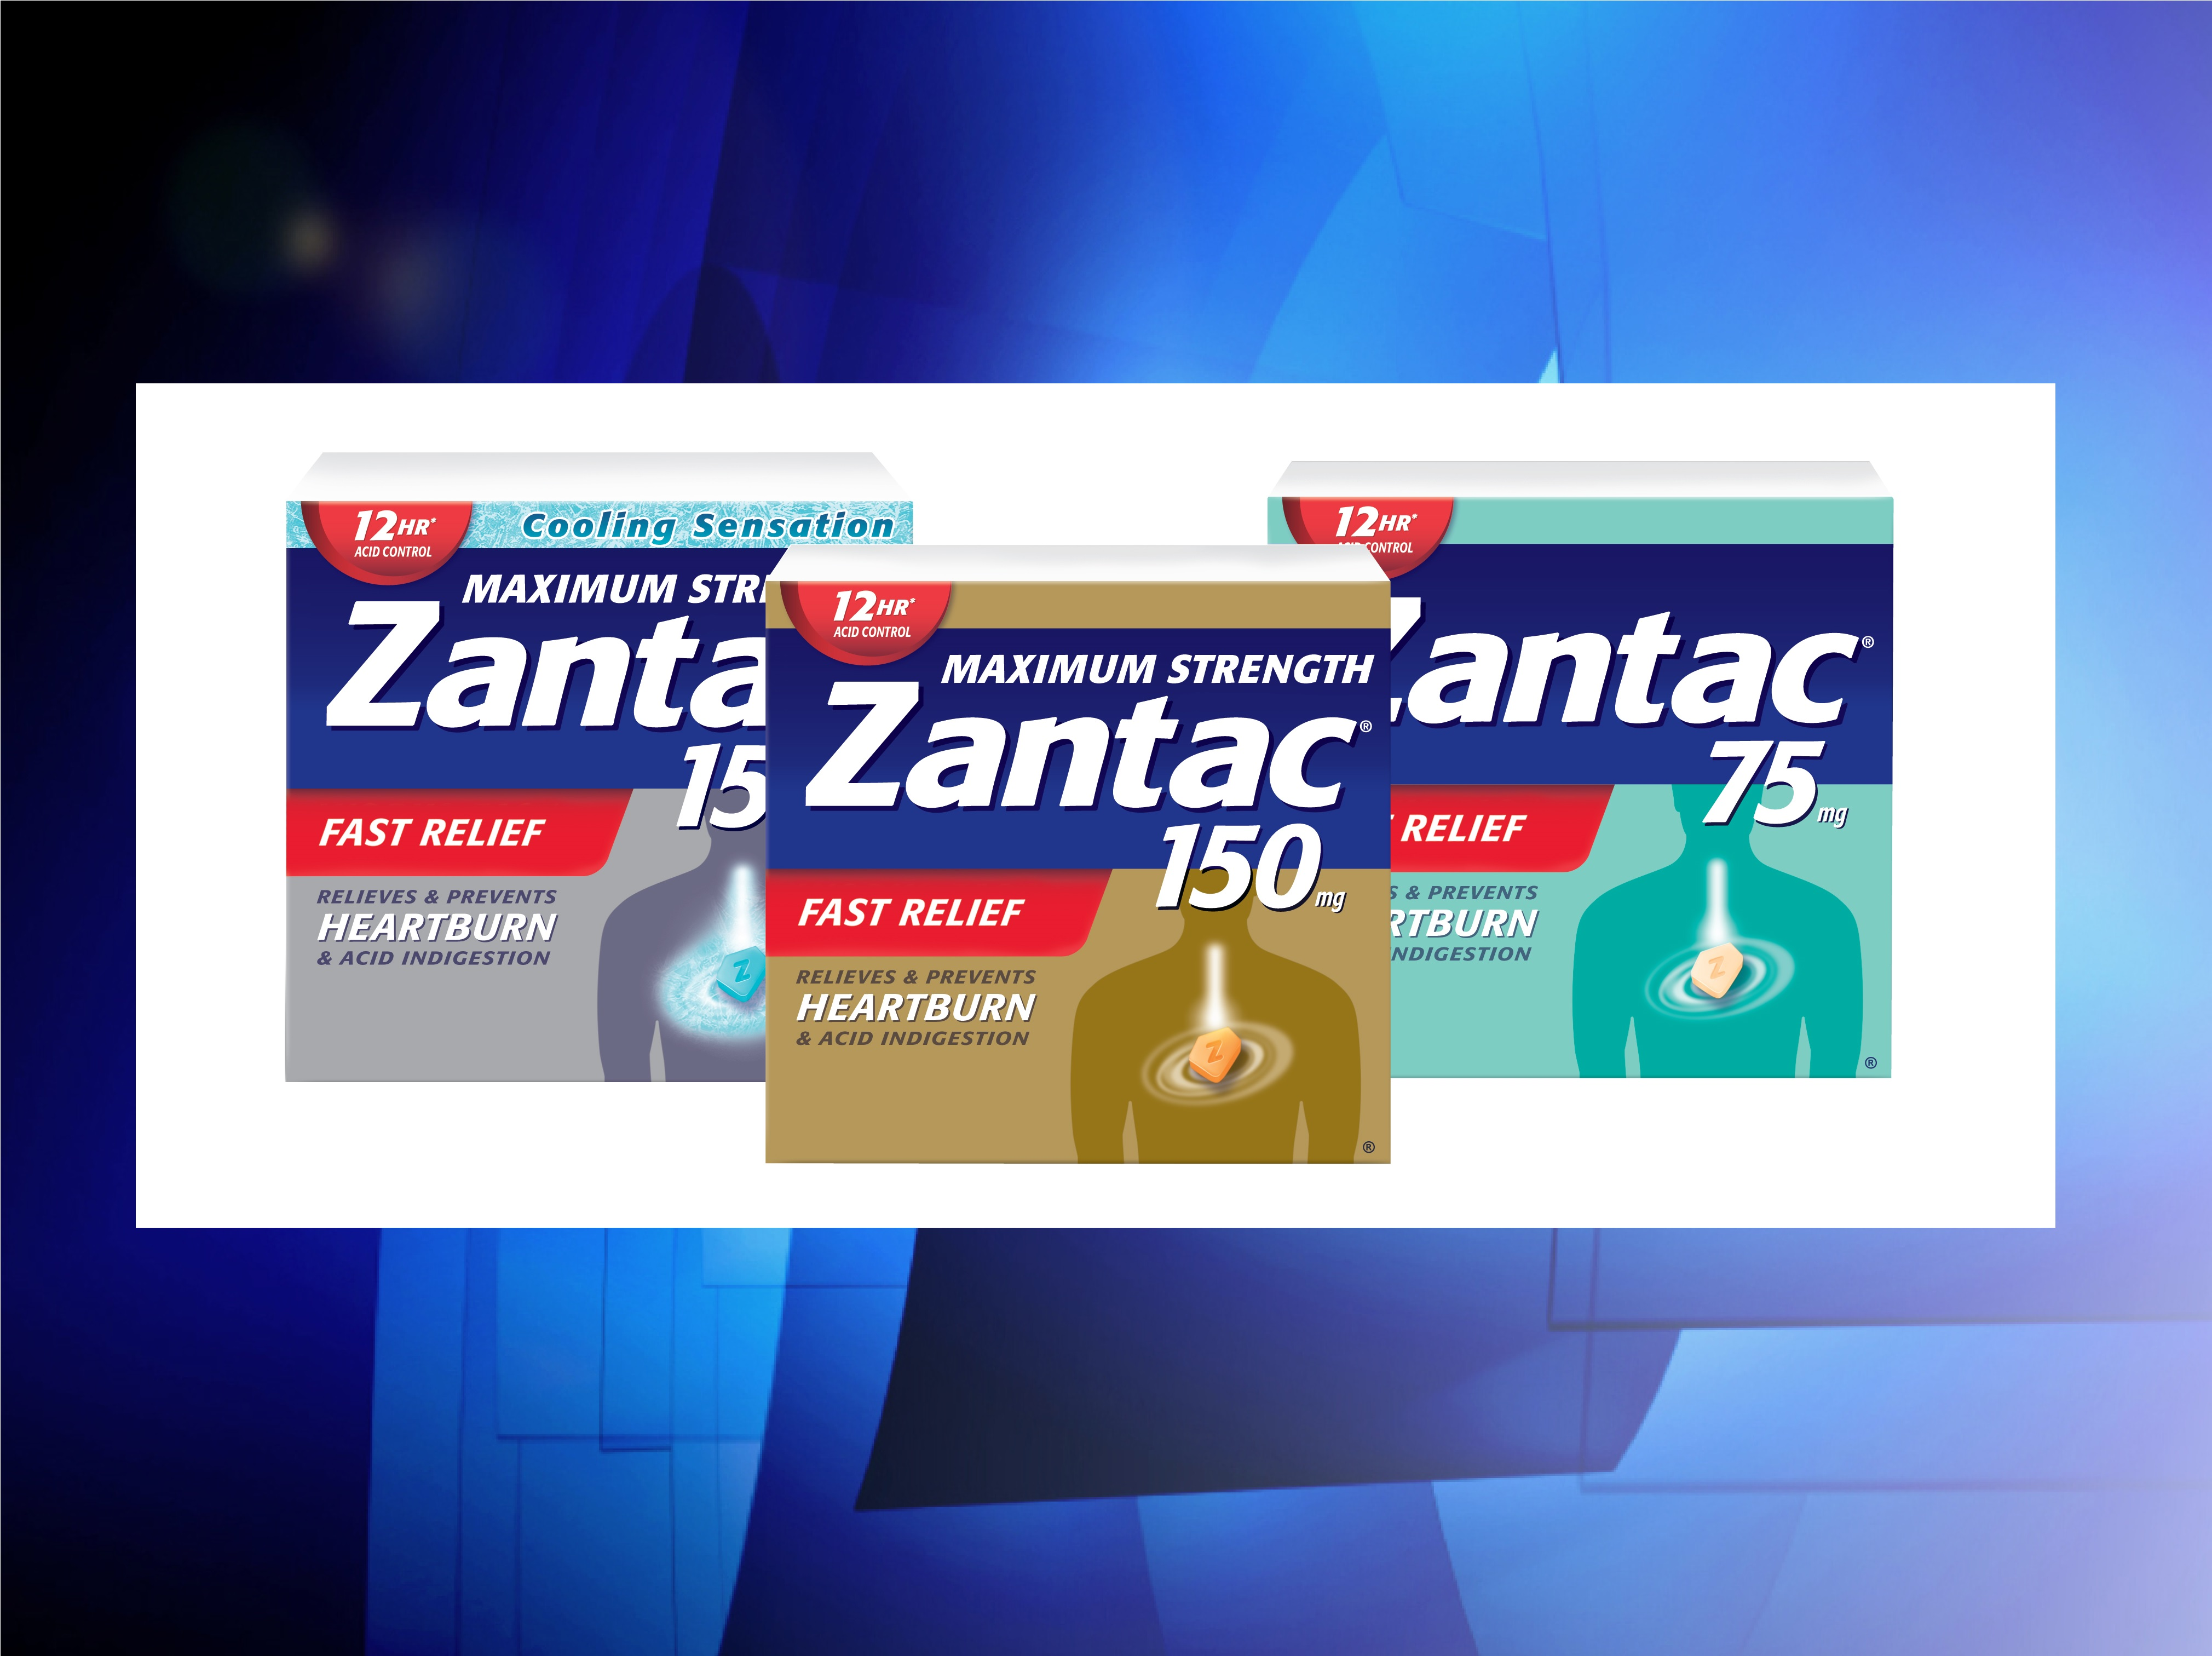 Zantac and other medications recalled after concerns of NDMA levels (4 photos)